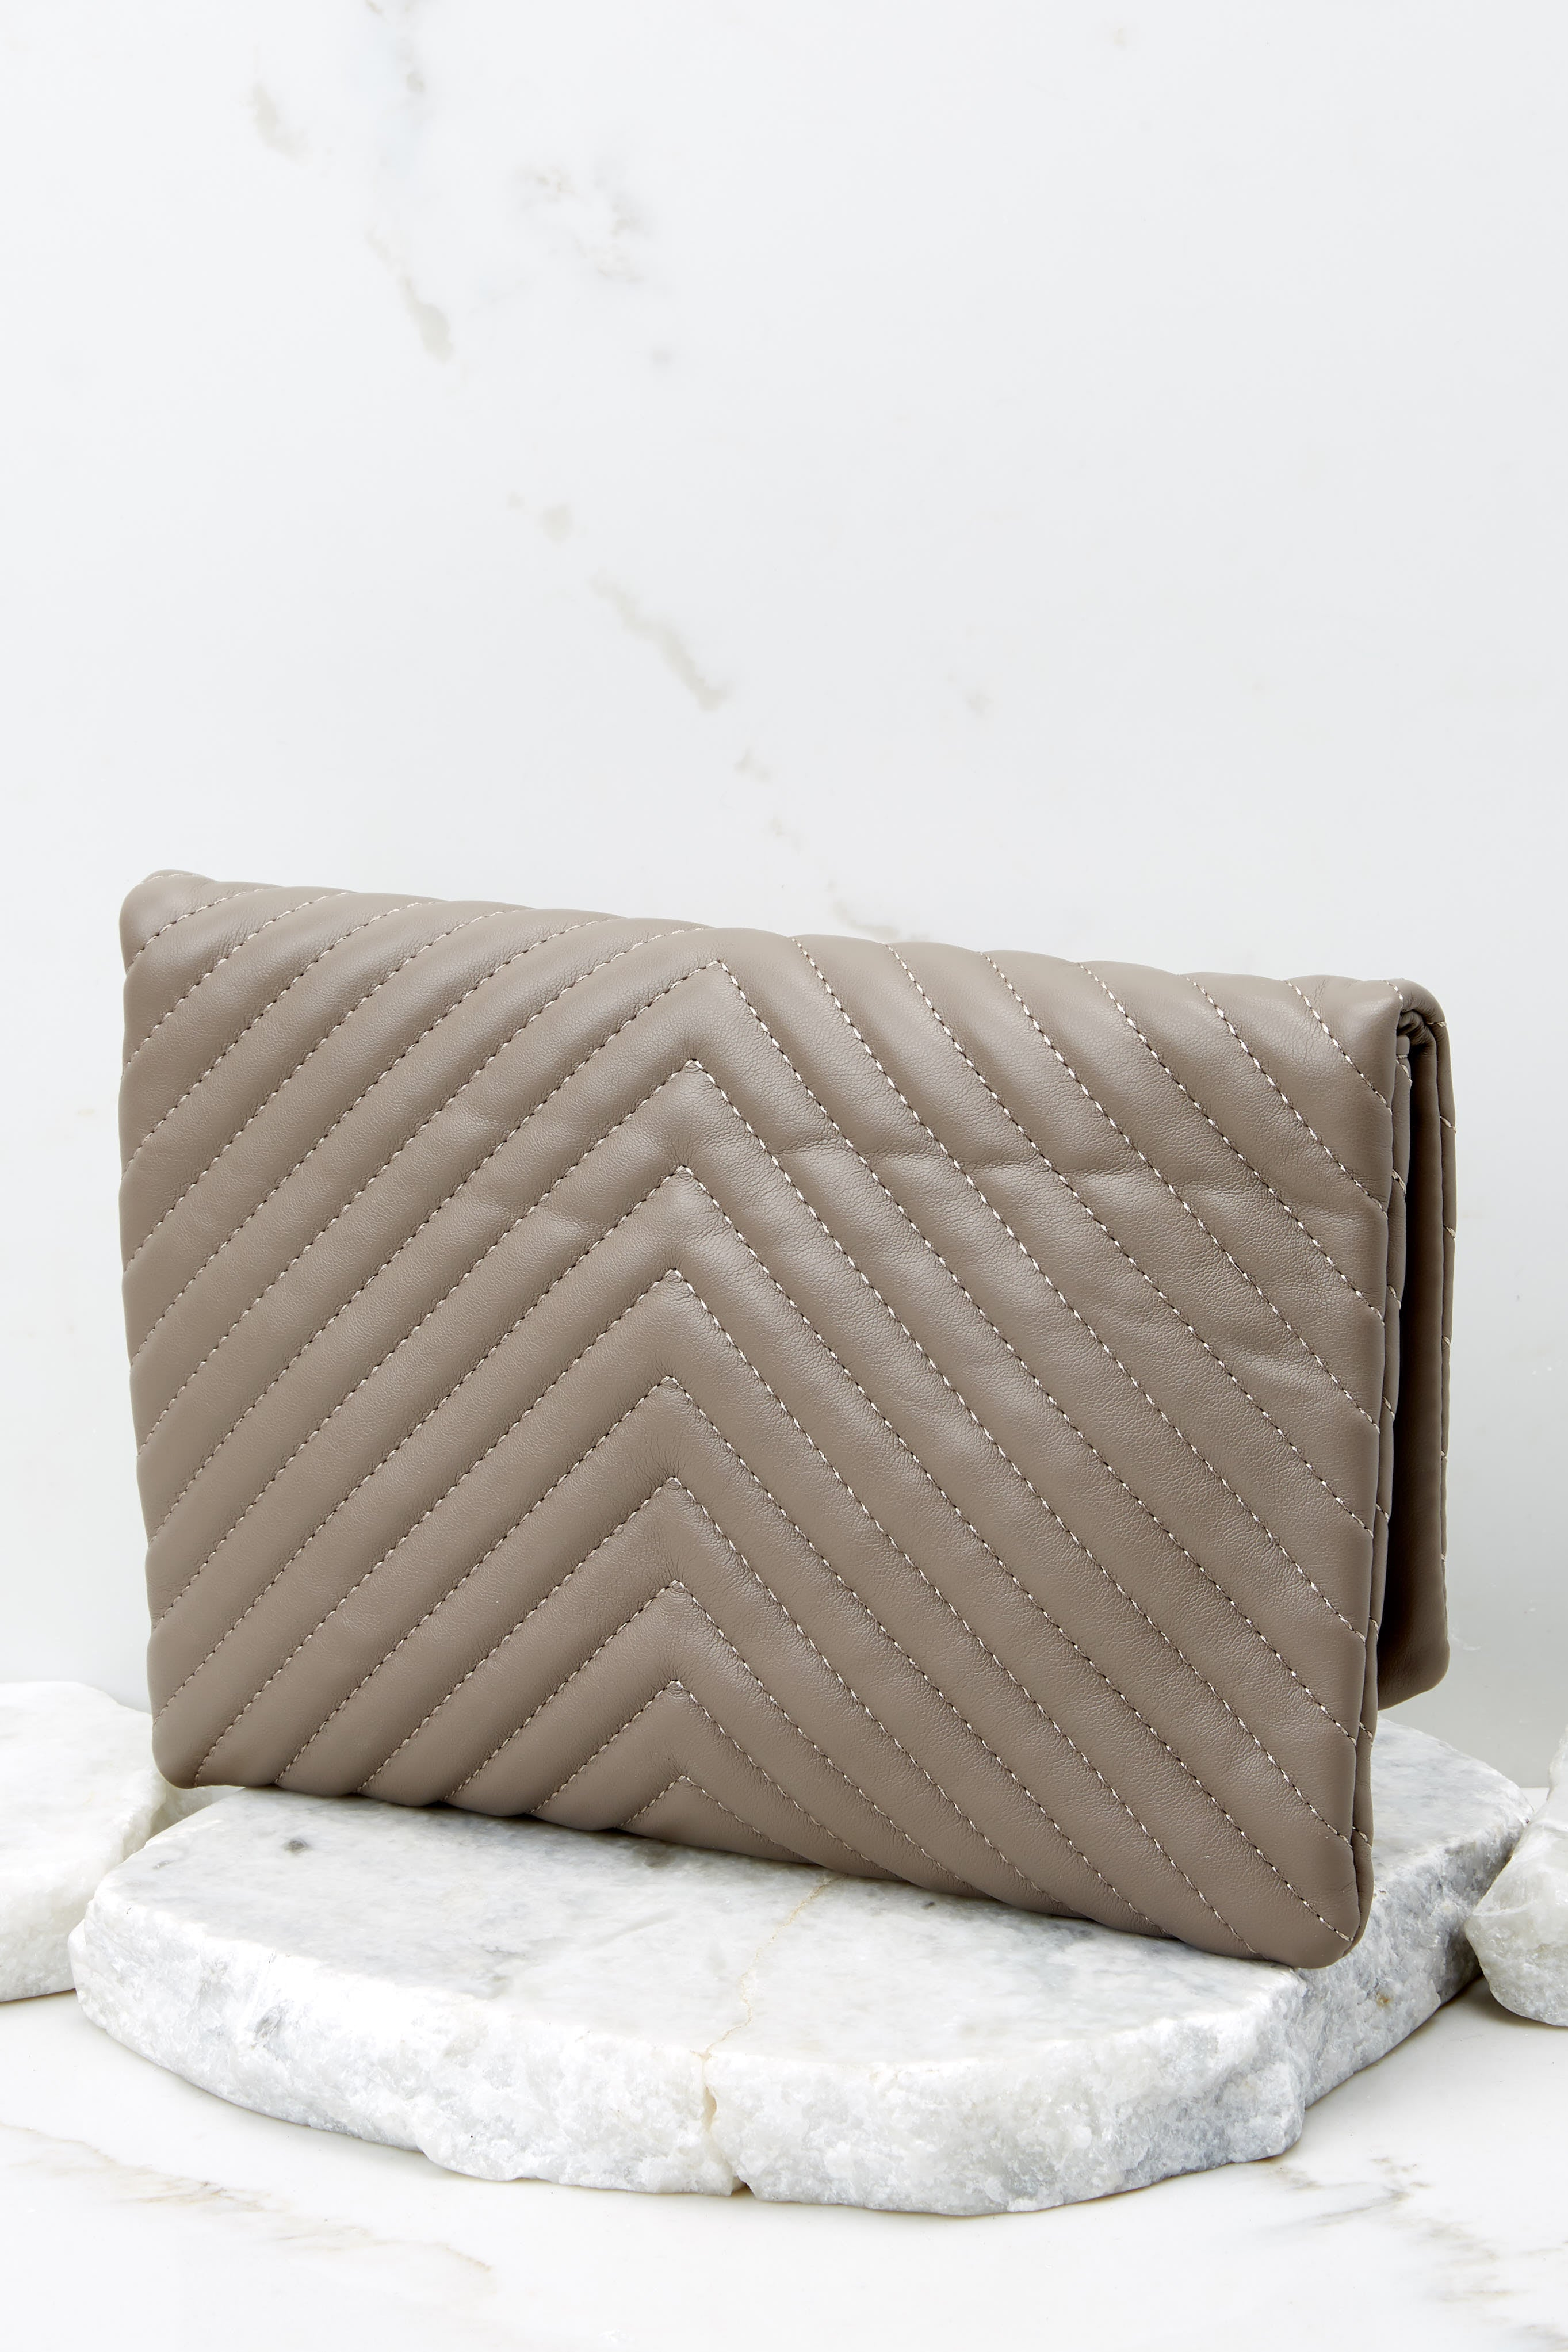 4 In Line With Style Ash Grey Clutch at reddress.com